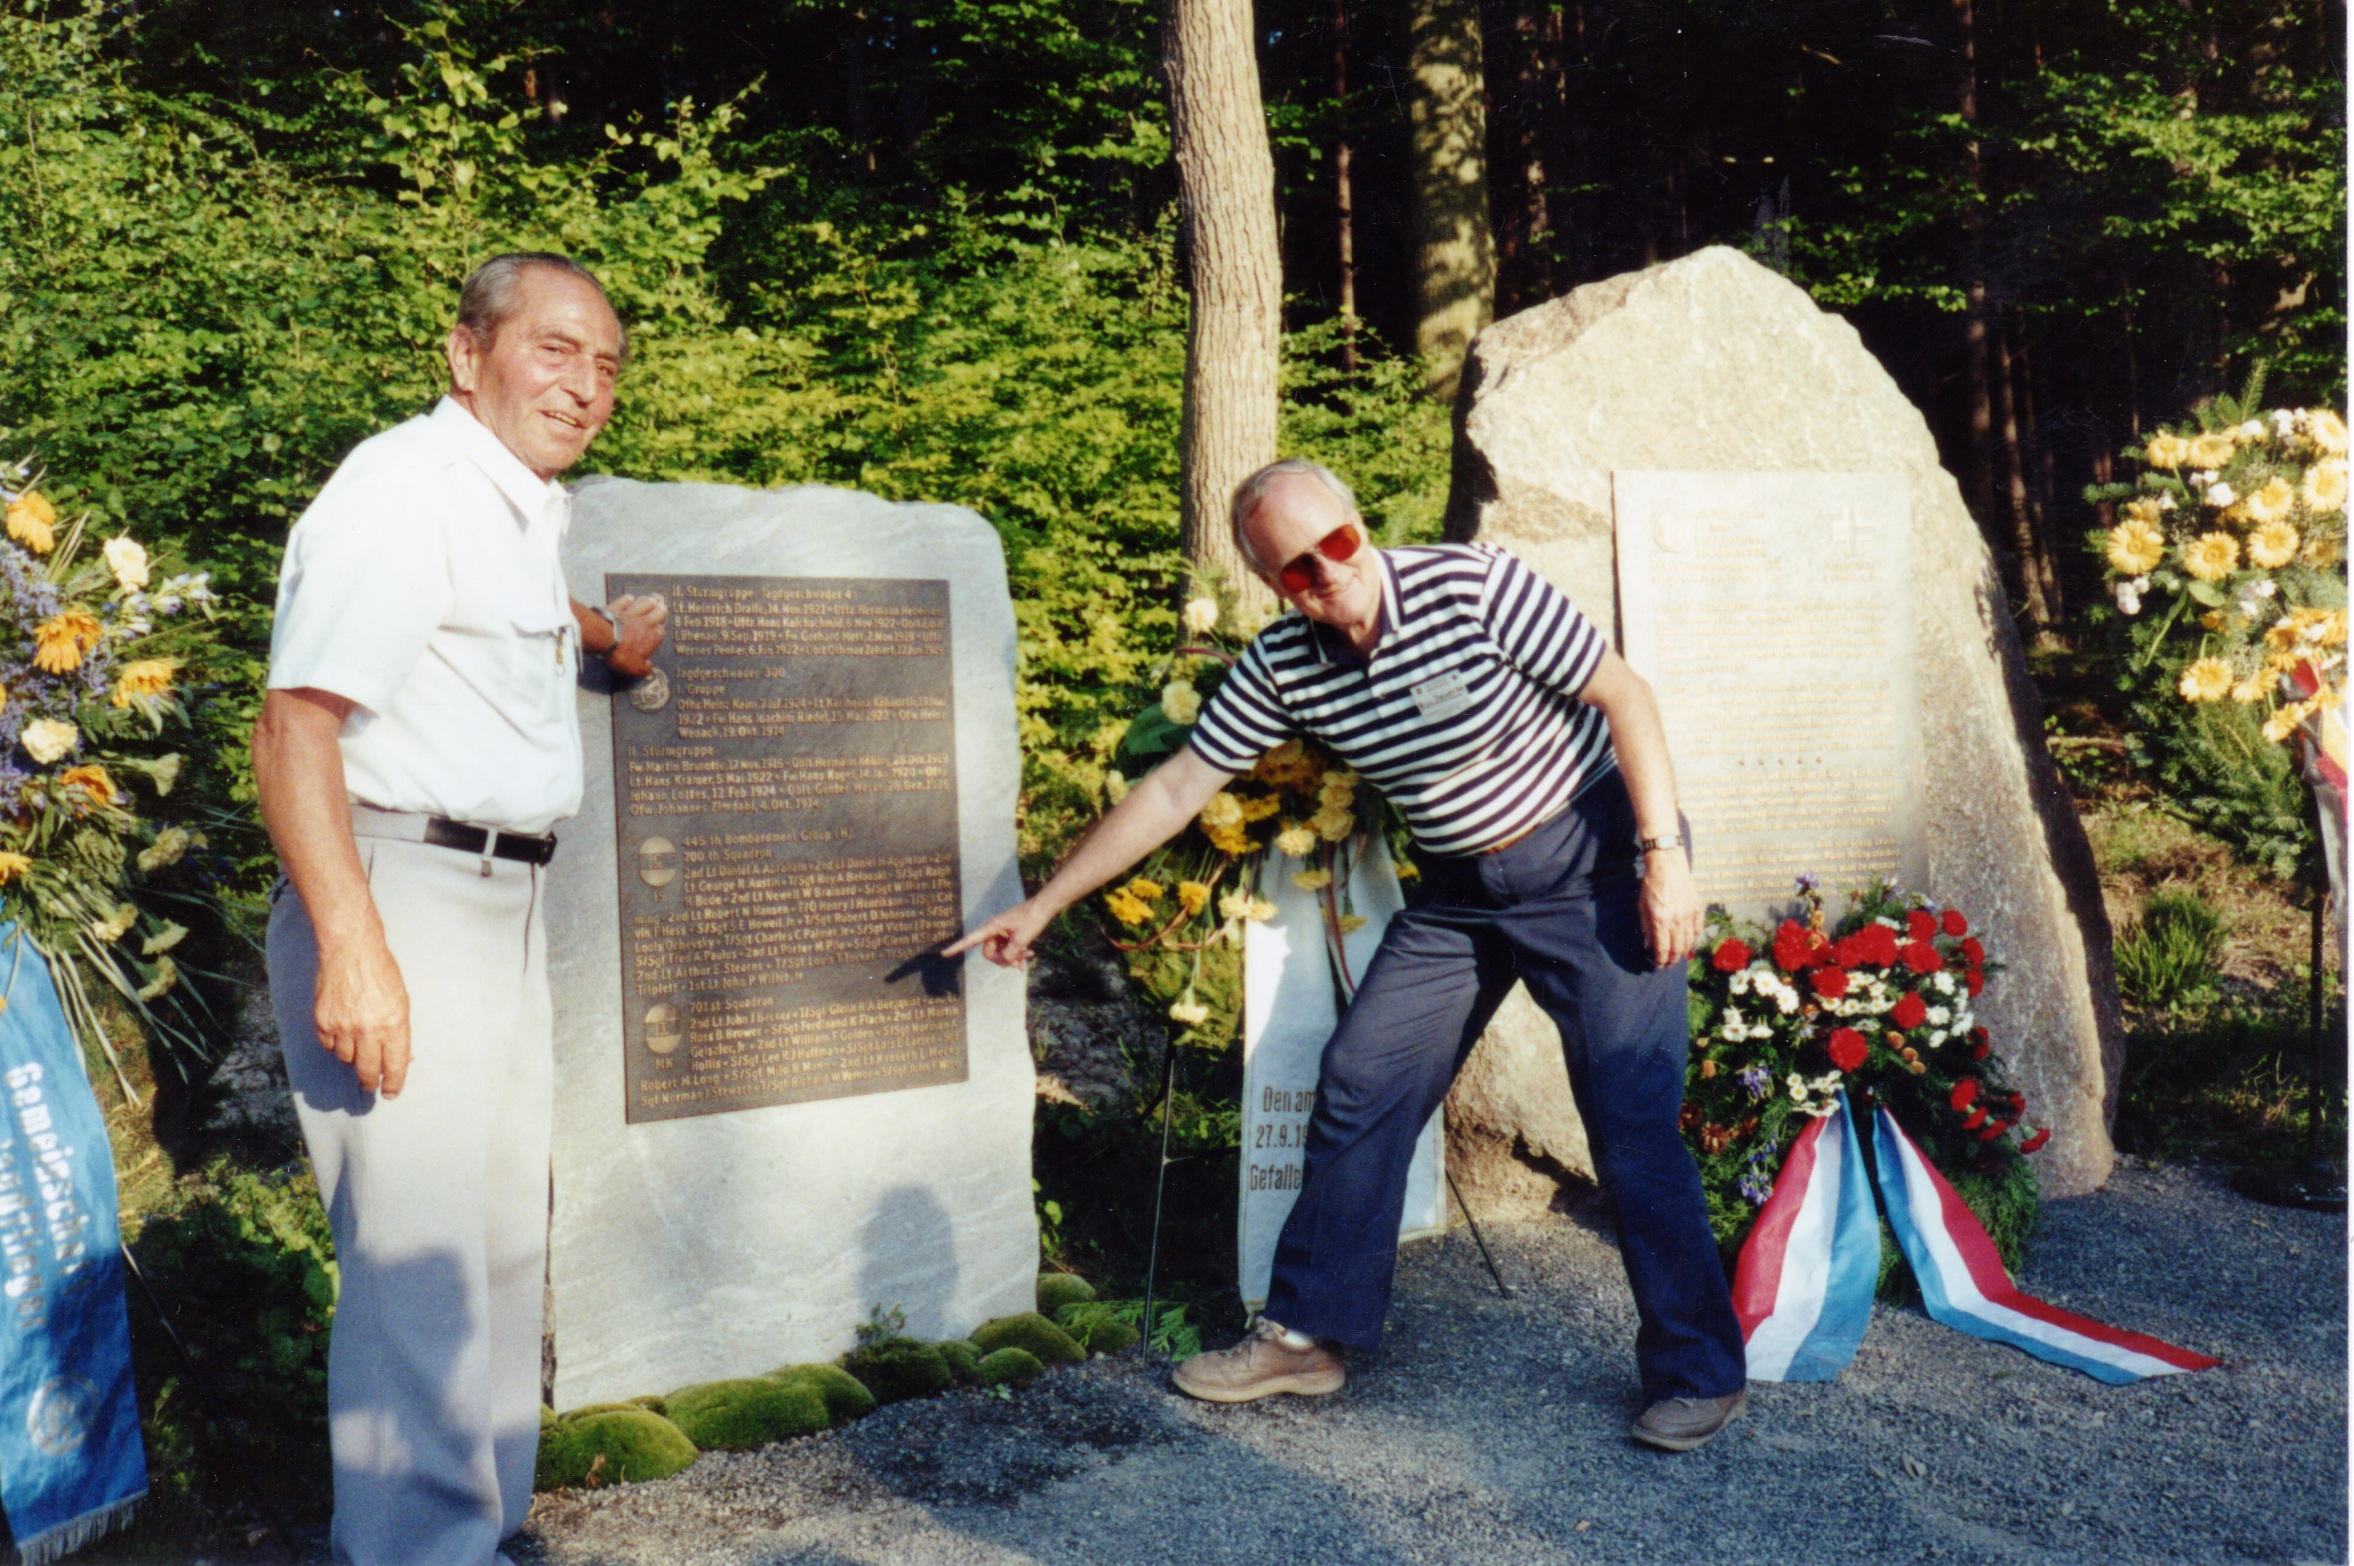 Pappenberg and Dewey point to names on Memorial